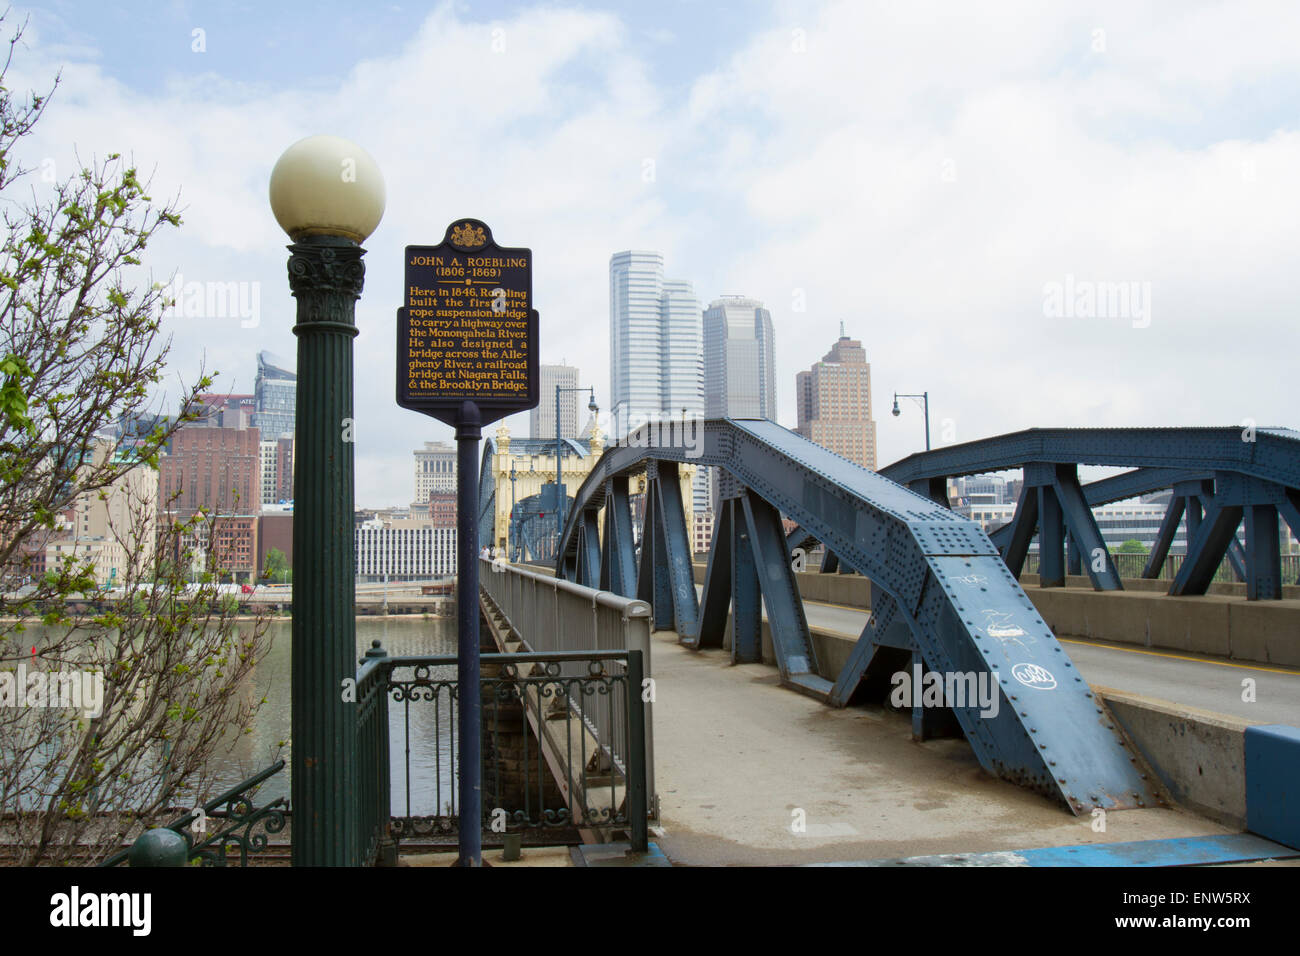 Pittsburgh, PA, USA - May 5, 2015 : Smithfield street bridge with marker memorializing designer John A. Roebling - Stock Image